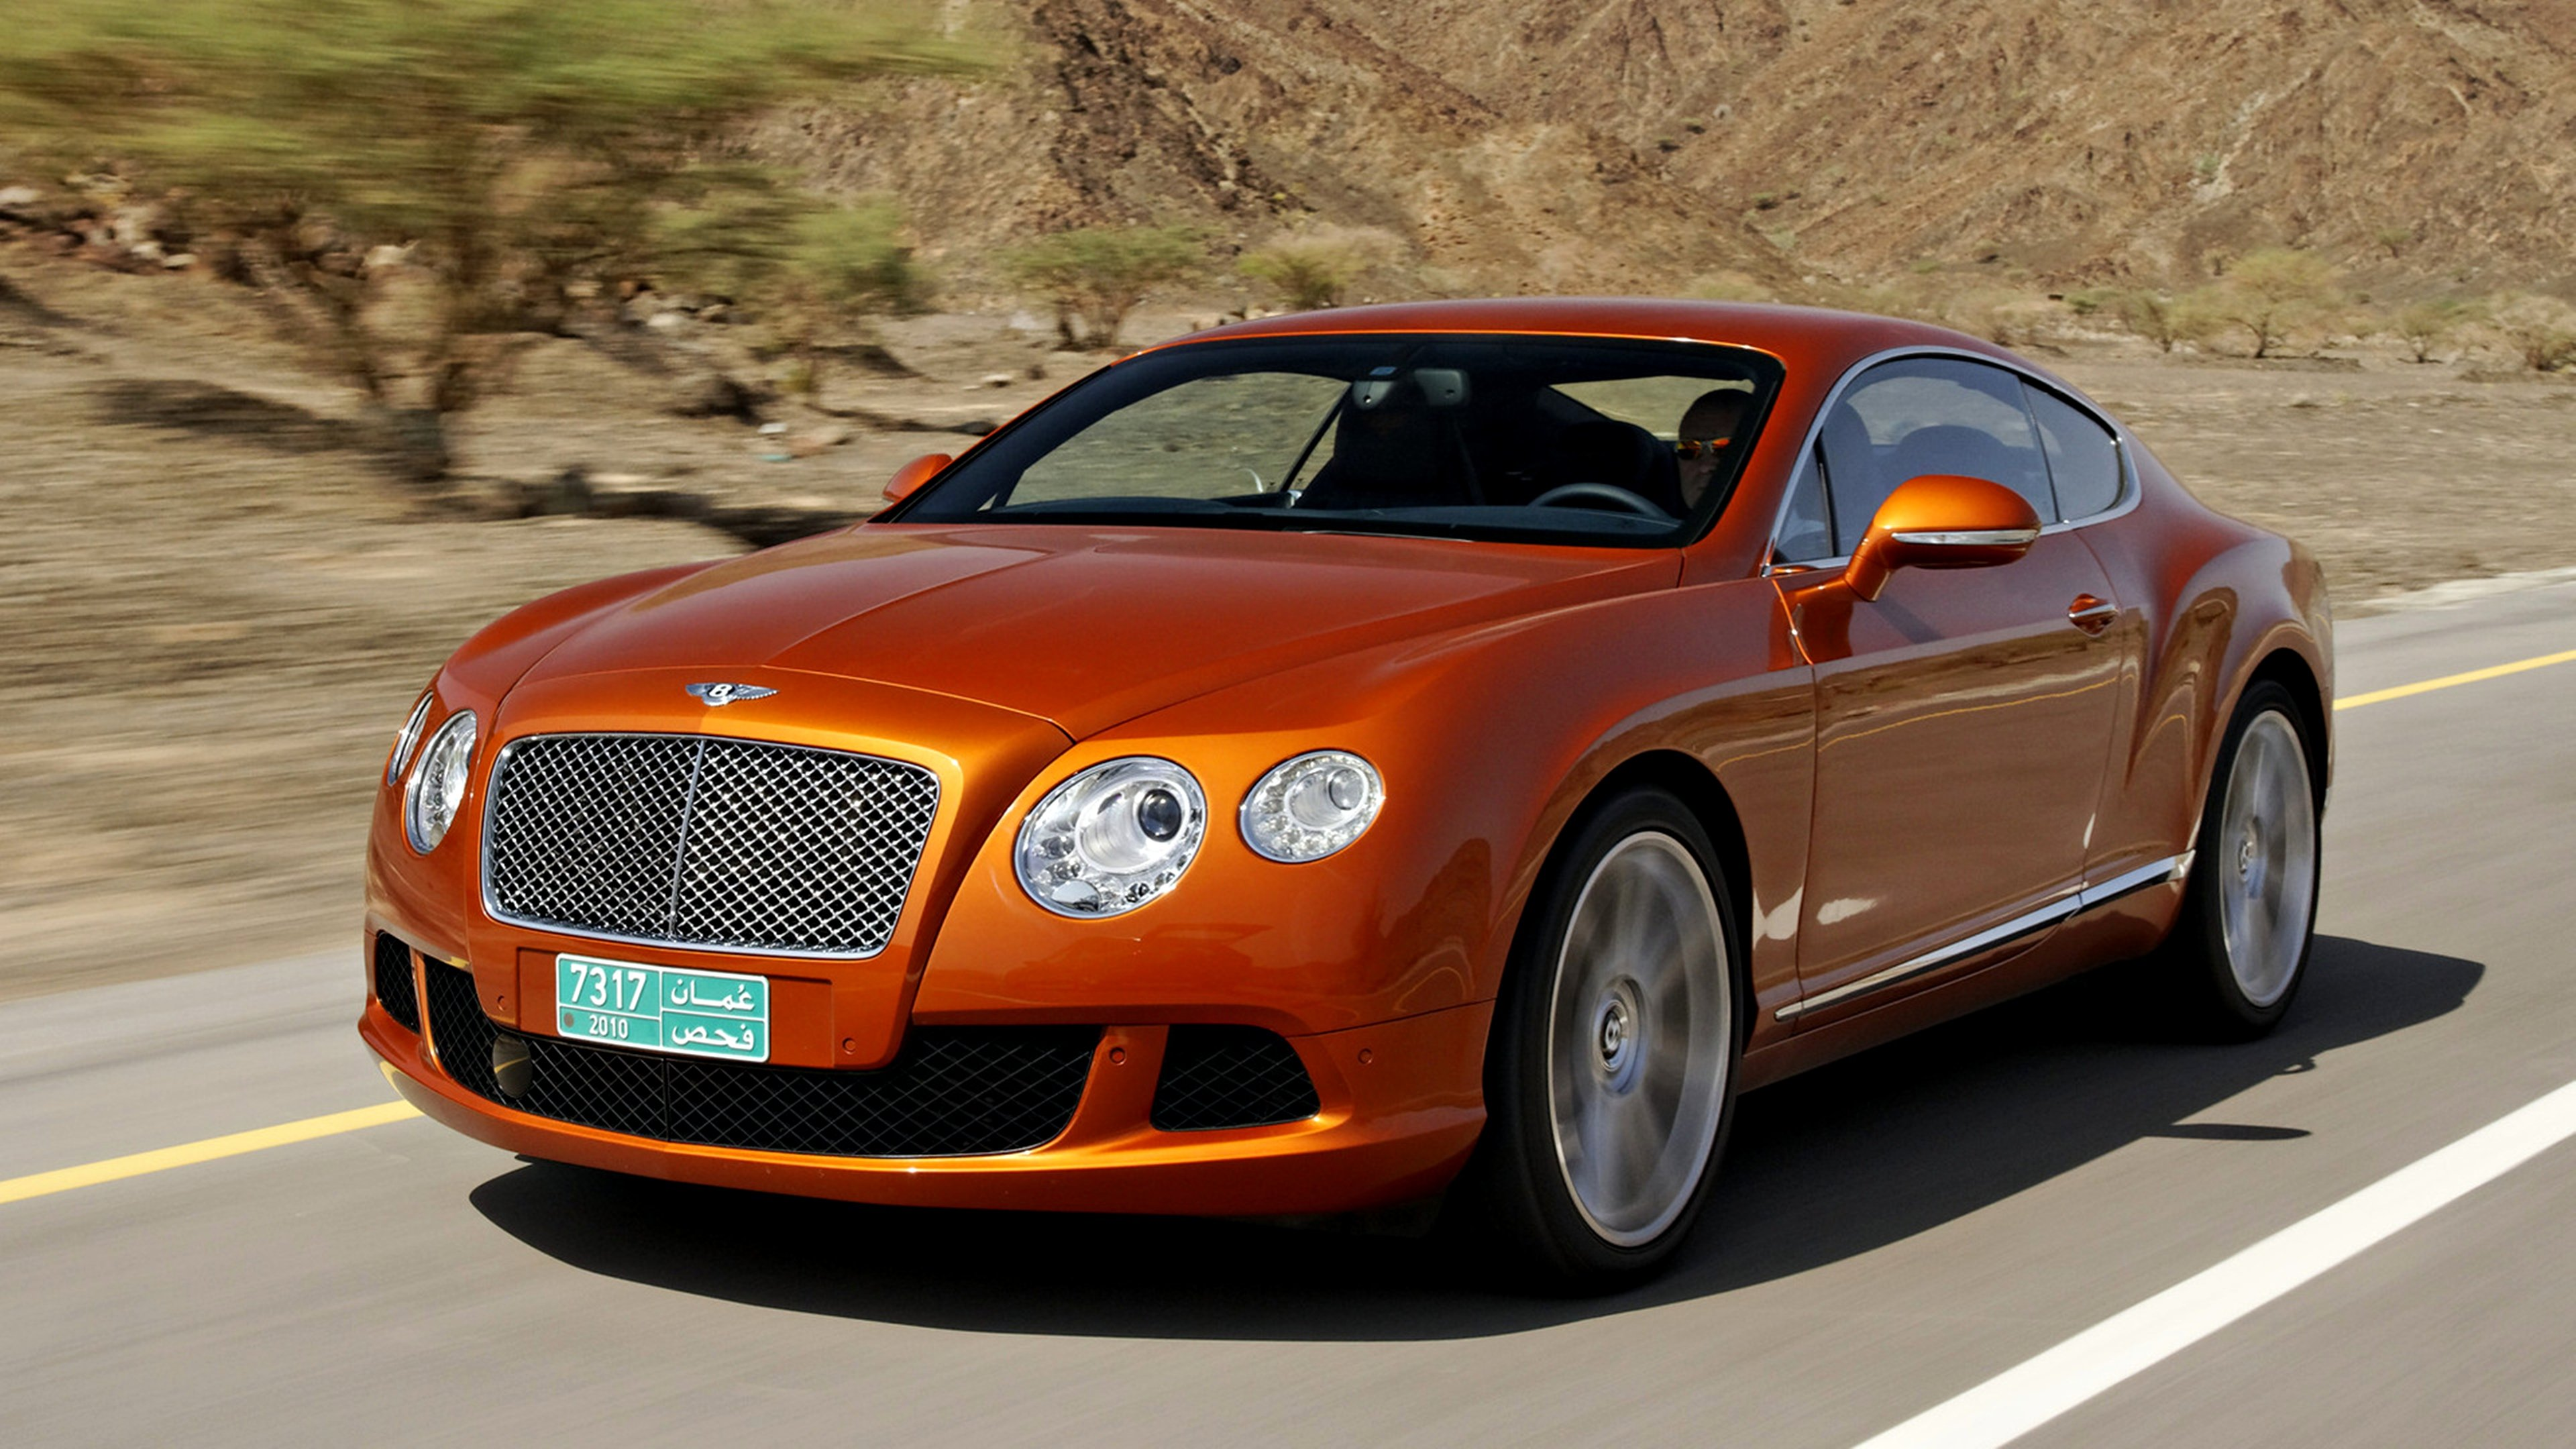 inherited travel coupe segment cars rather subtle as luxury and coup but styling known series departures gt halo of concept curious characteristics for highres from design both the innovative bmw approaches continental life arts marked bentley